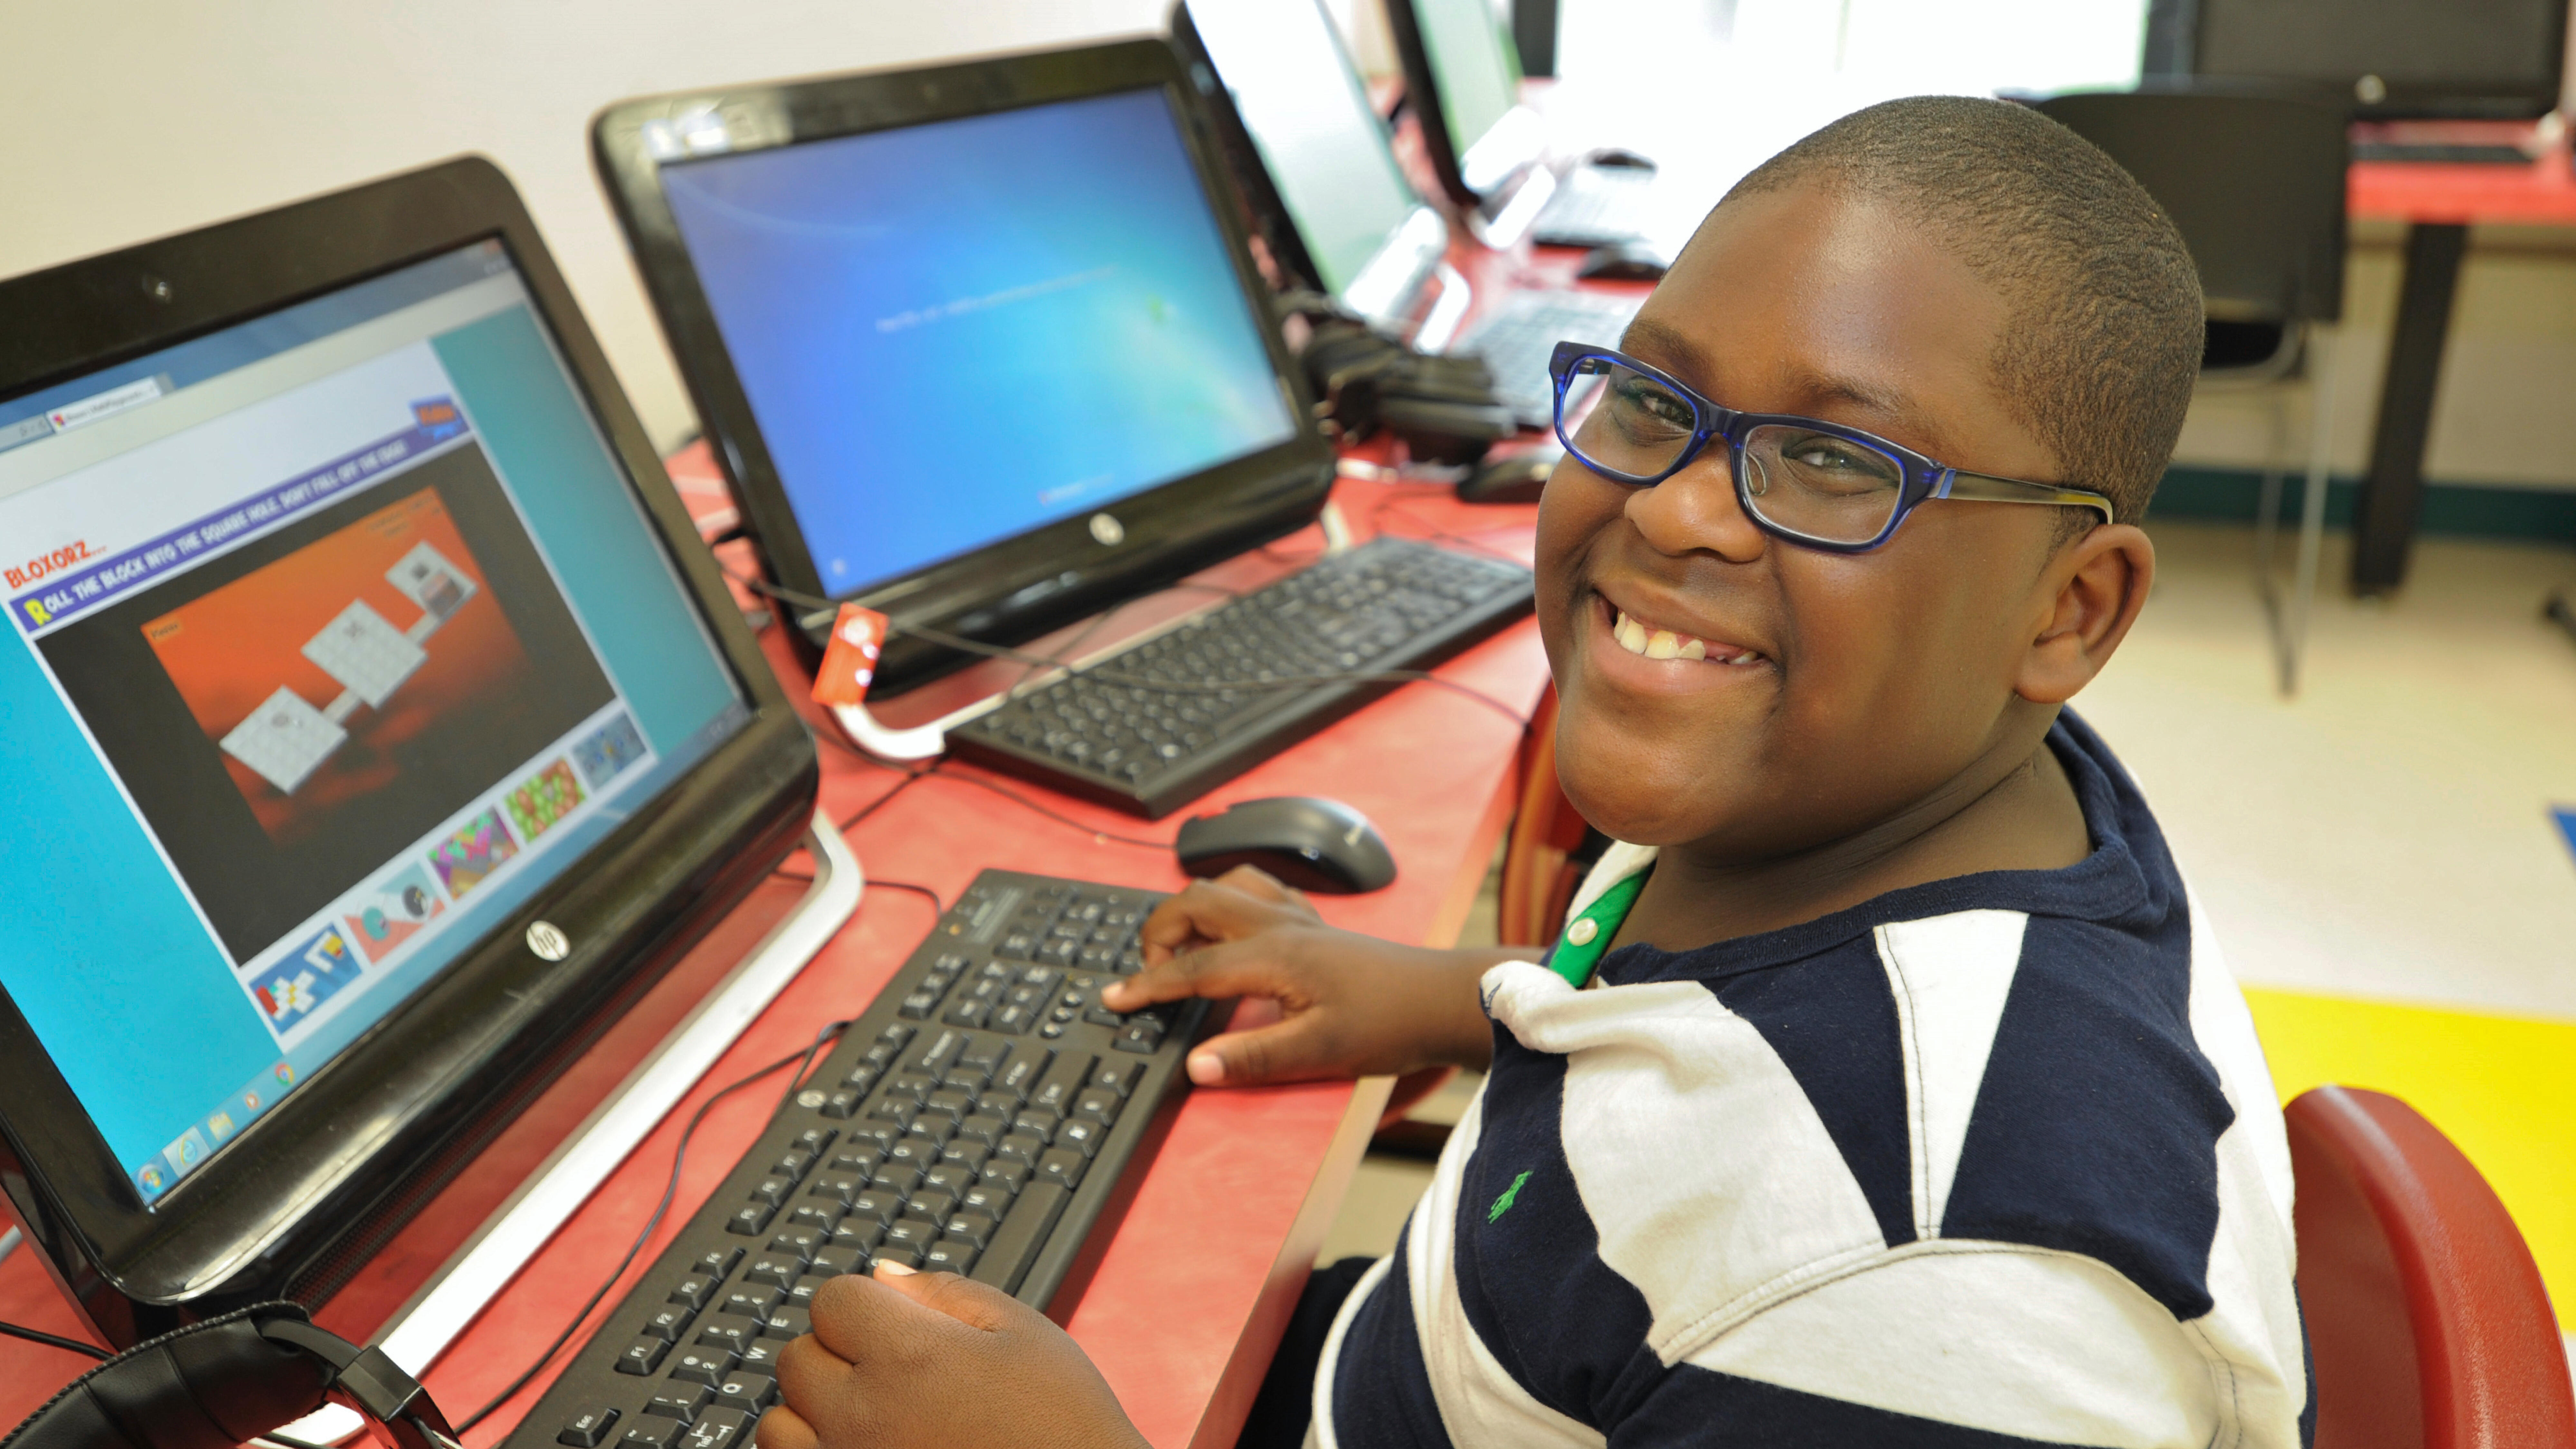 Special Education student smiling while working at a computer.